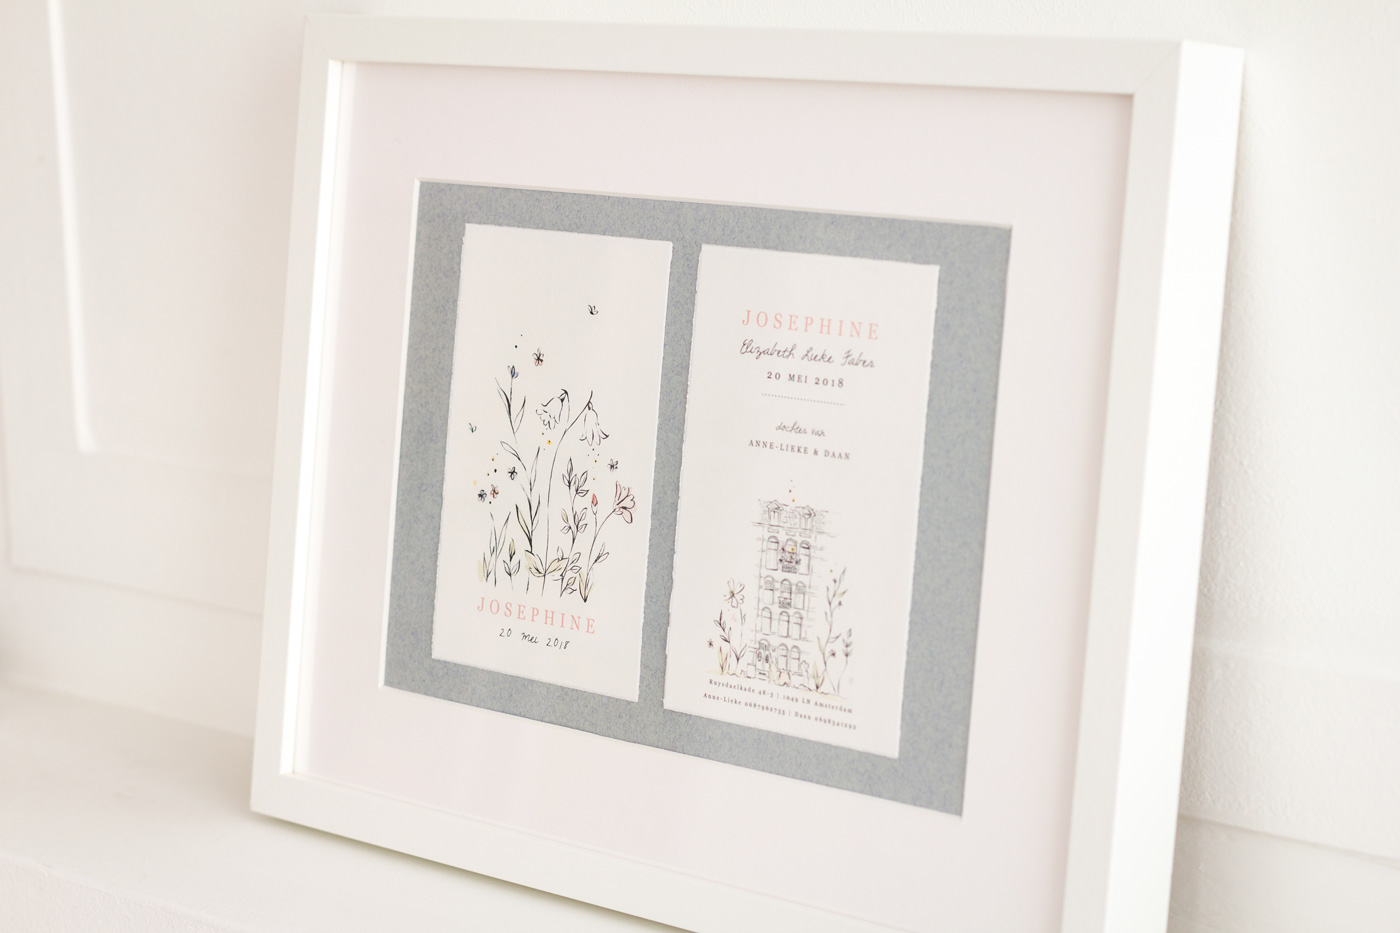 Framed birth announcement card Amsterdam Netherlands